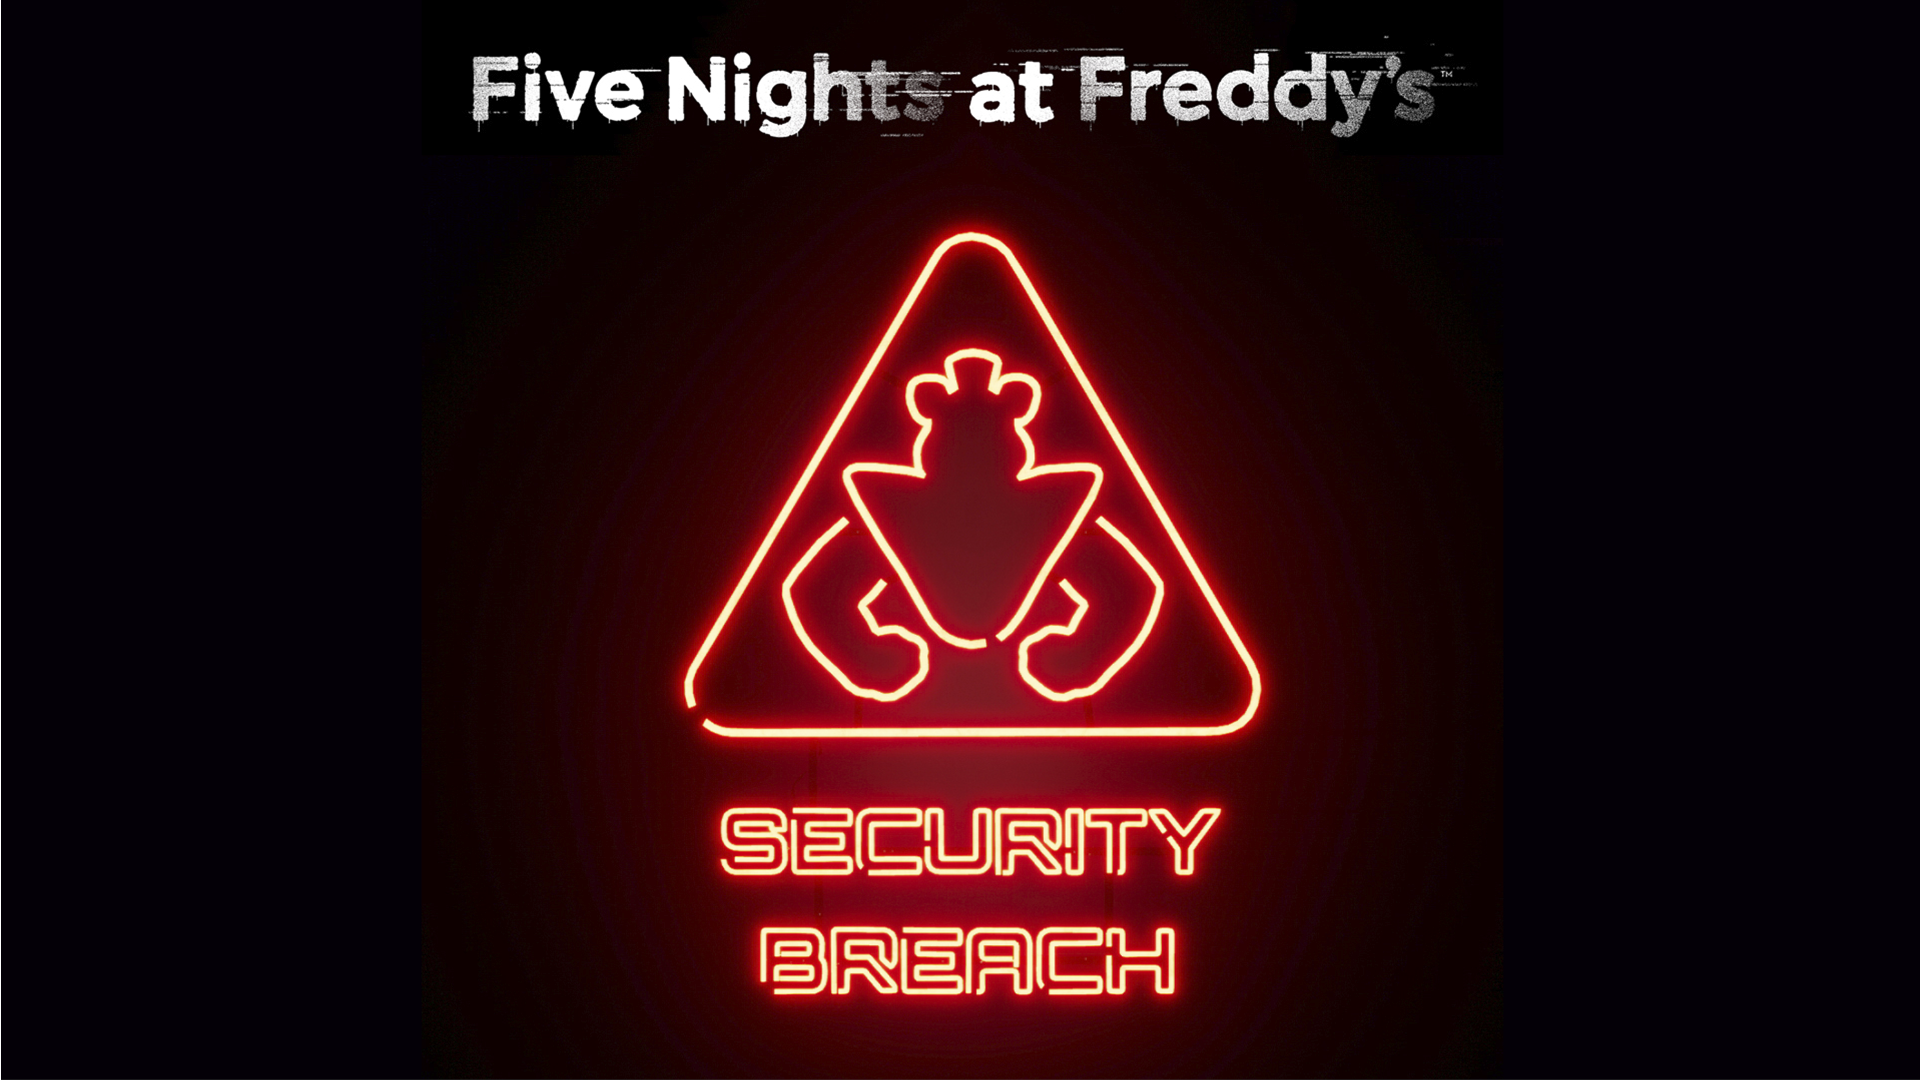 Five Nights at Freddy's: Security Breach - วัตถุโปรโมต